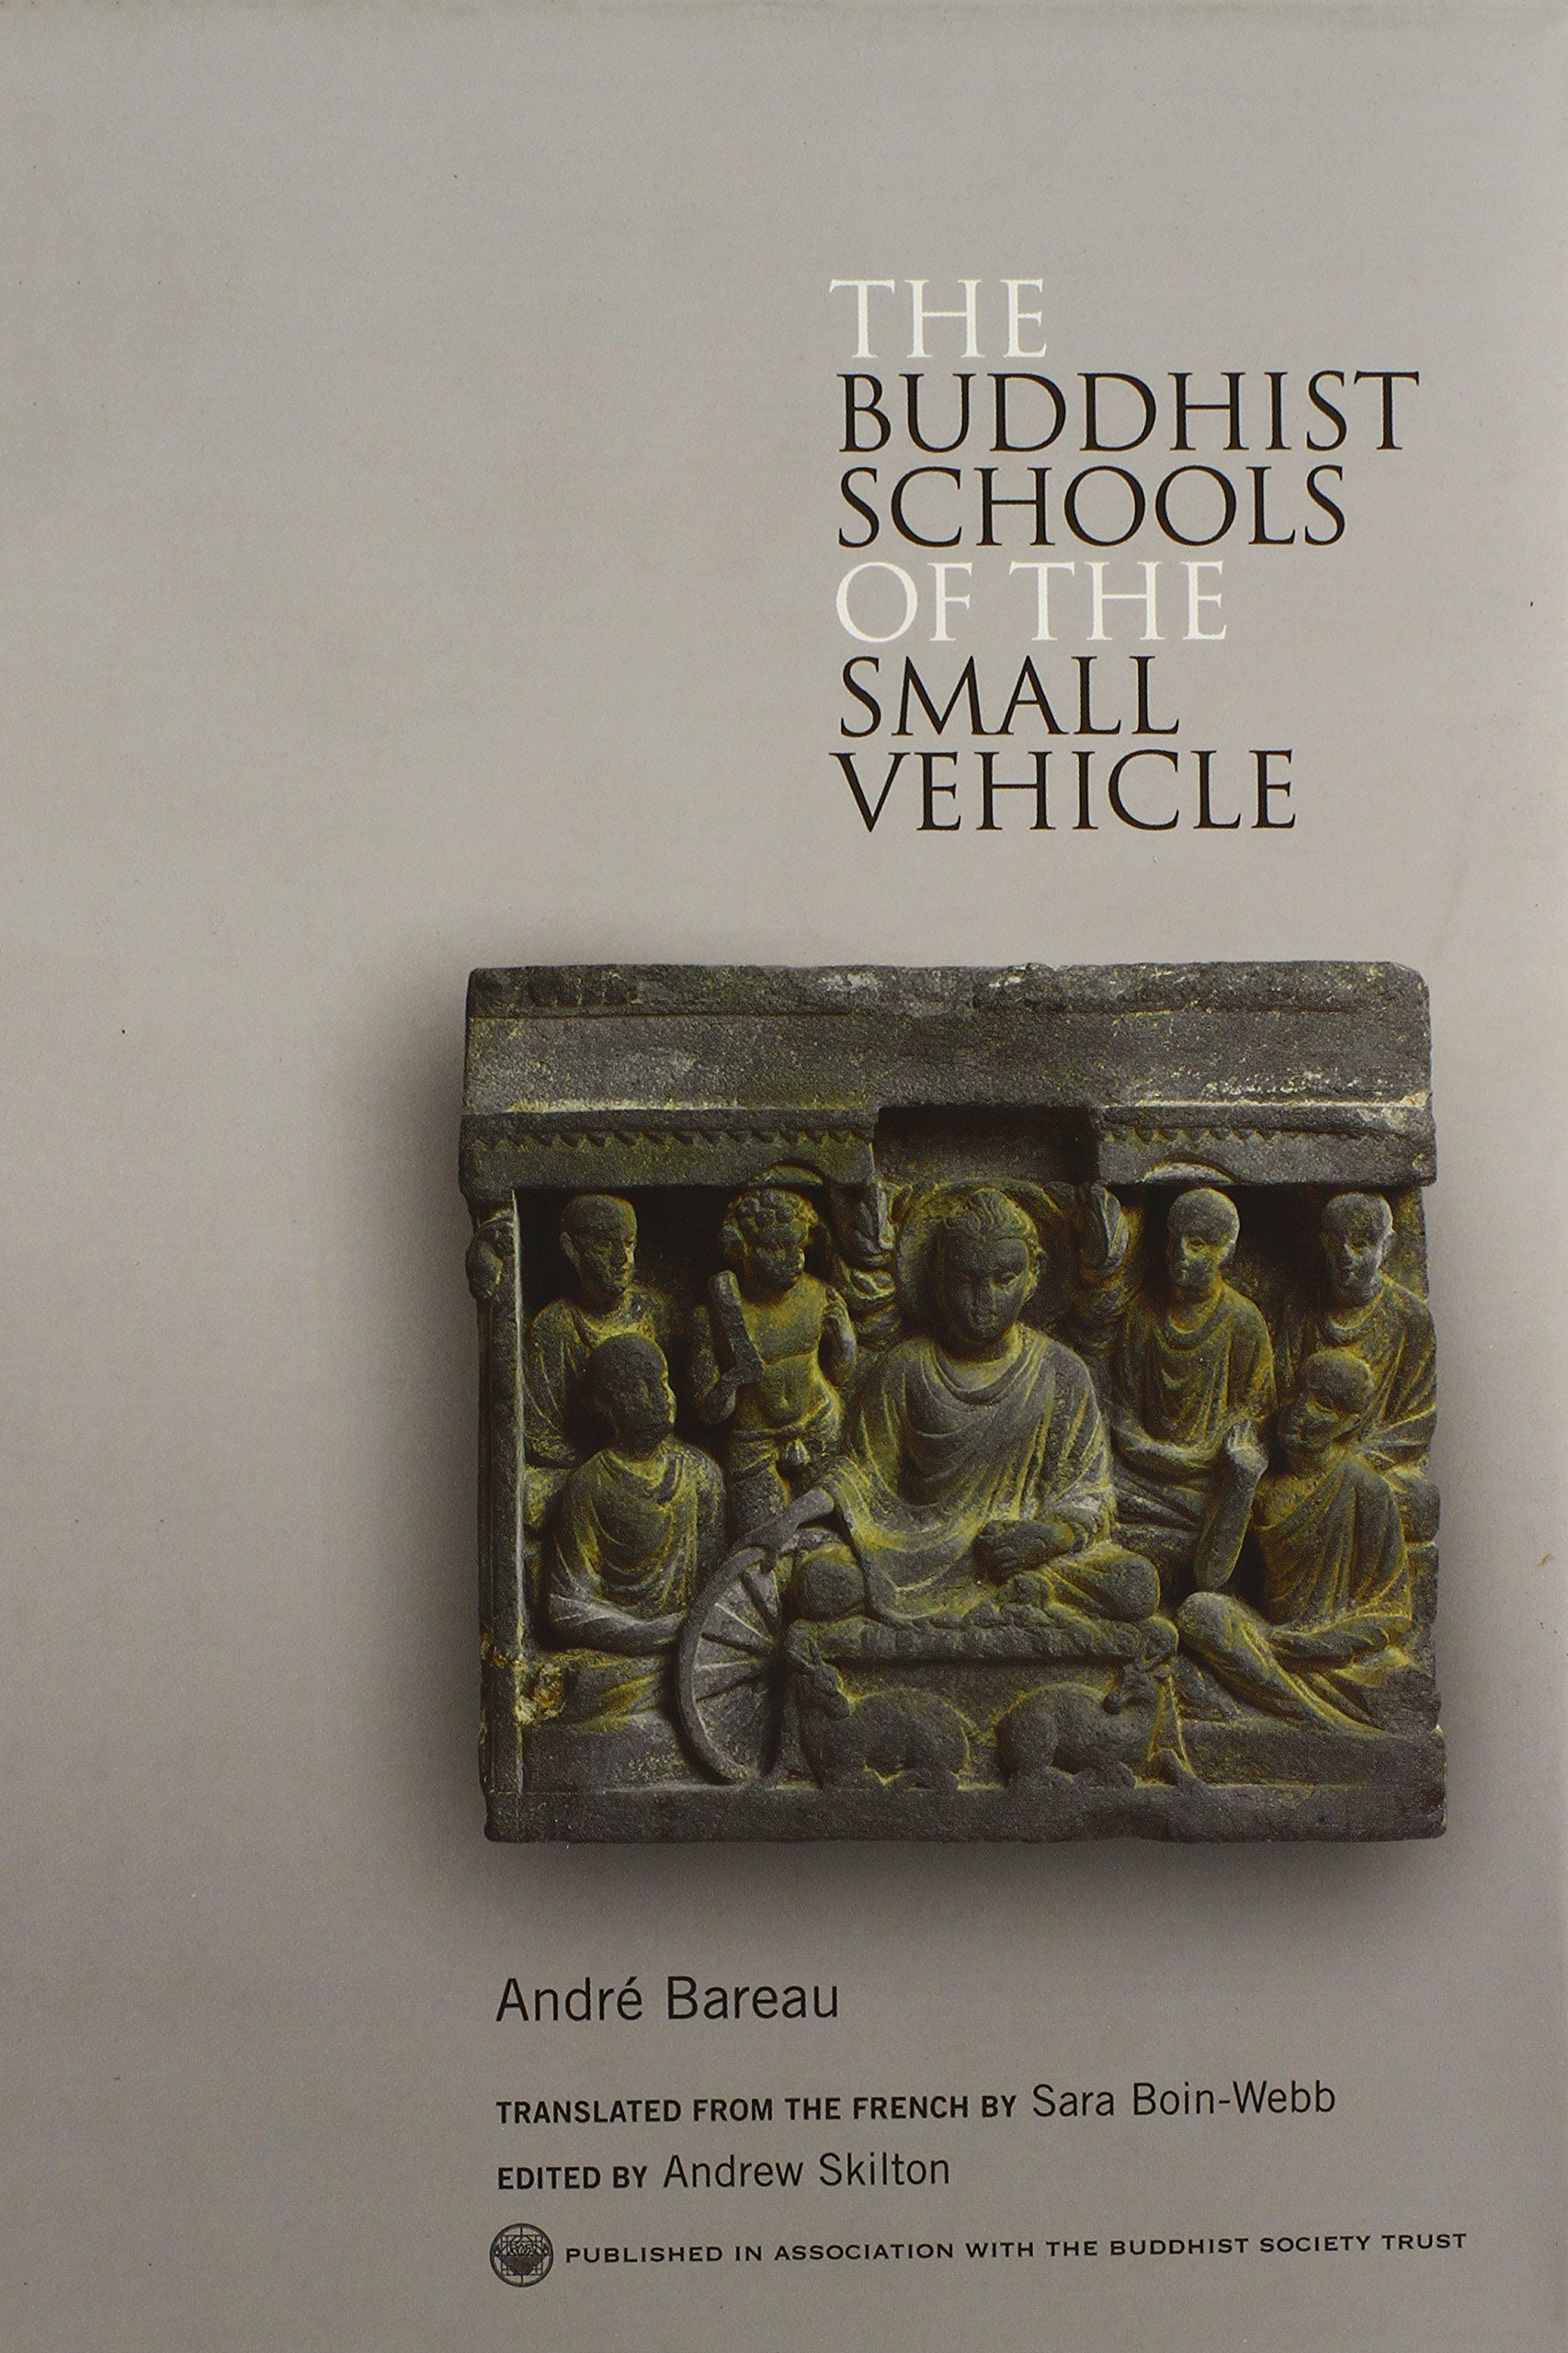 Bareau Buddhist Schools cover art